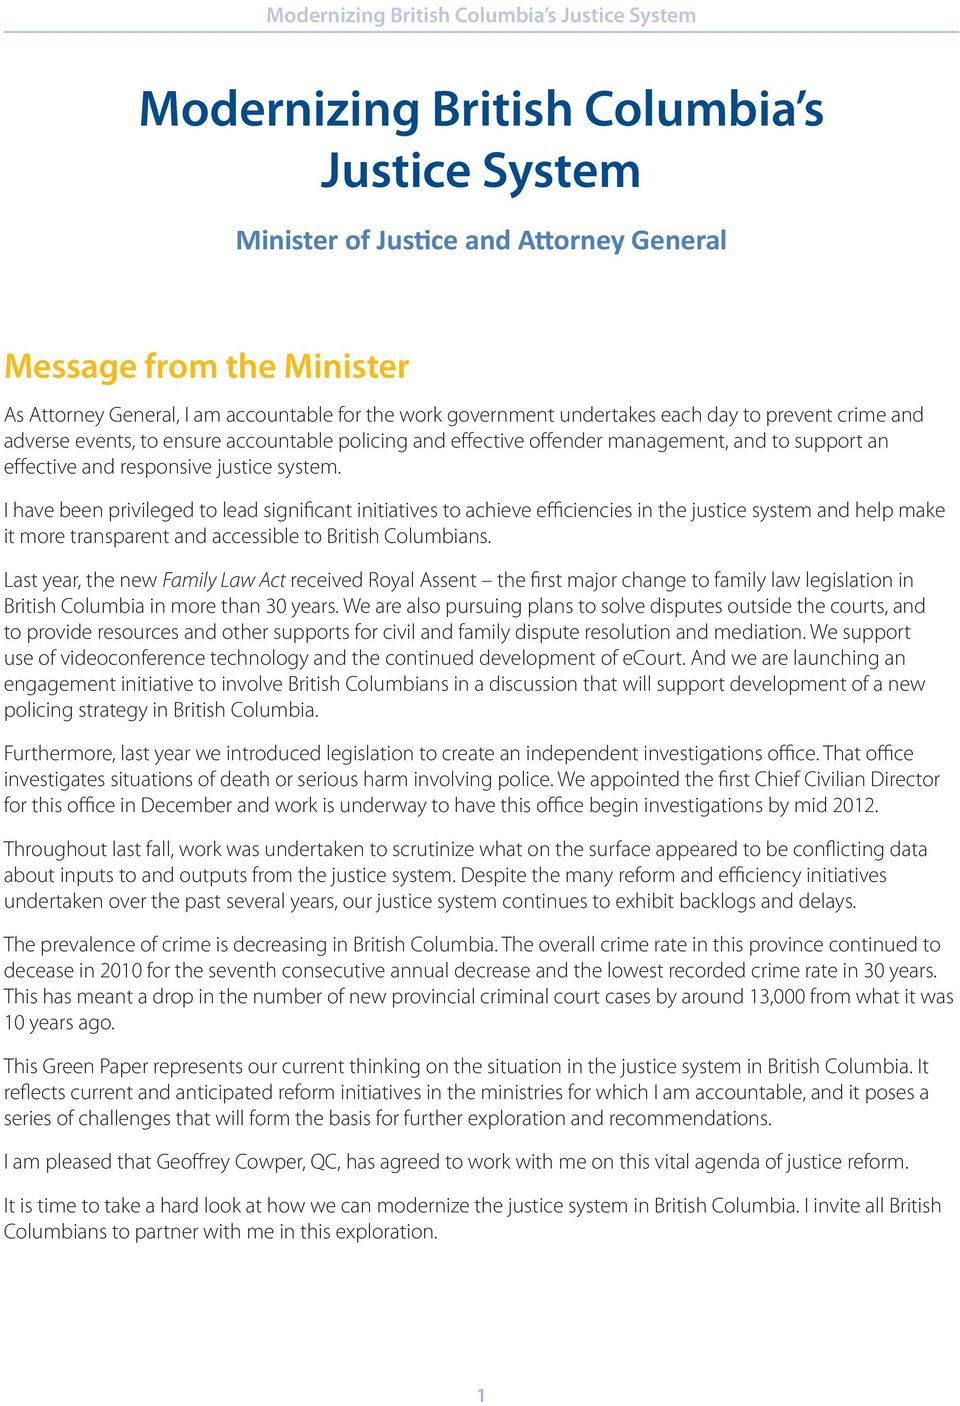 I have been privileged to lead significant initiatives to achieve efficiencies in the justice system and help make it more transparent and accessible to British Columbians.